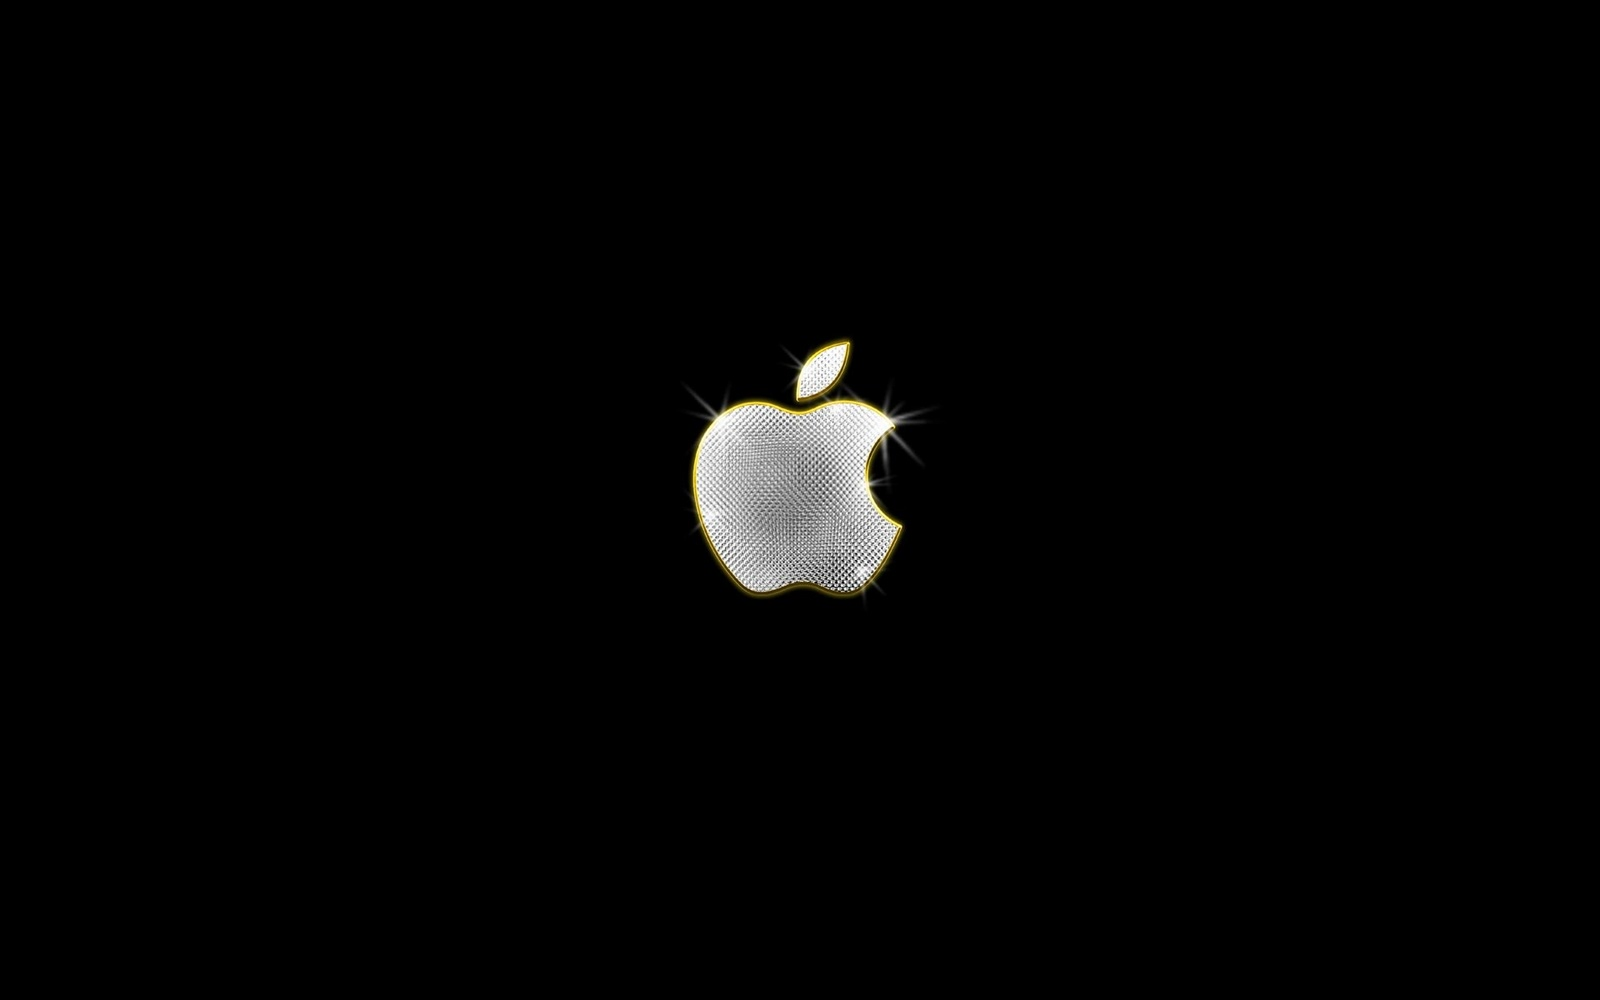 Best Apple Desktop Wallpaper PC Android iPhone and iPad Wallpapers 1600x1000